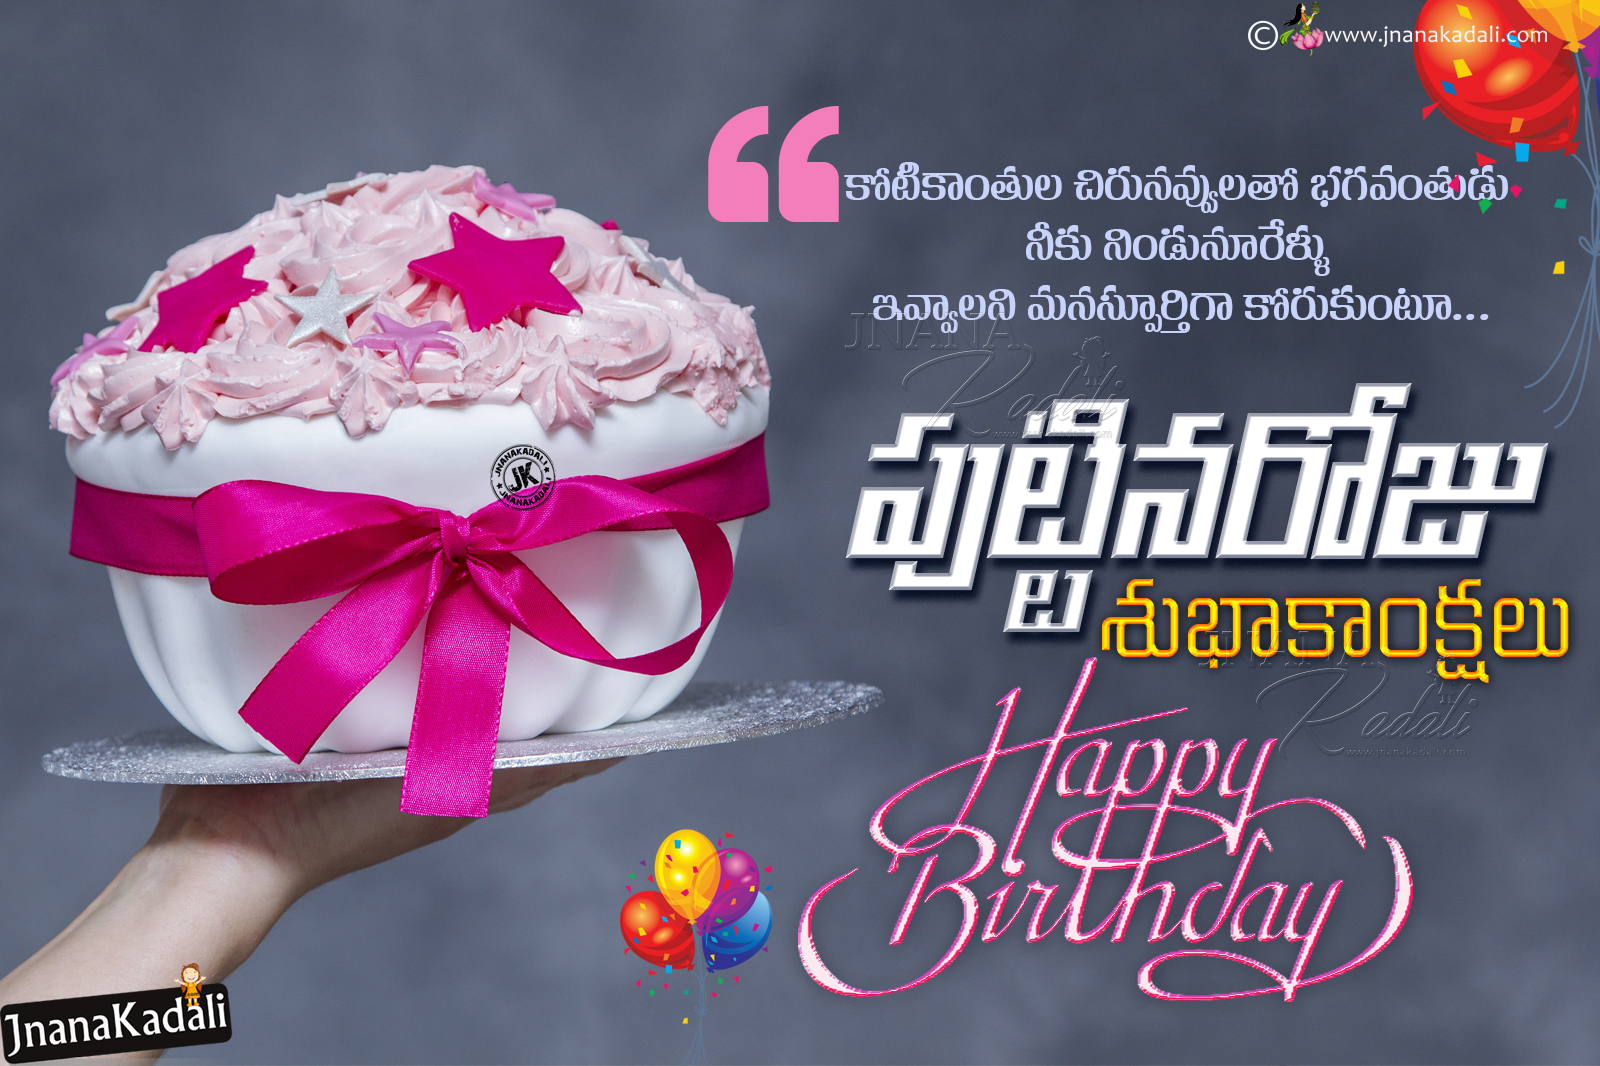 Astonishing Happy Birthday Greetings Images Sms Wishes Quotes In Telugu Funny Birthday Cards Online Inifofree Goldxyz